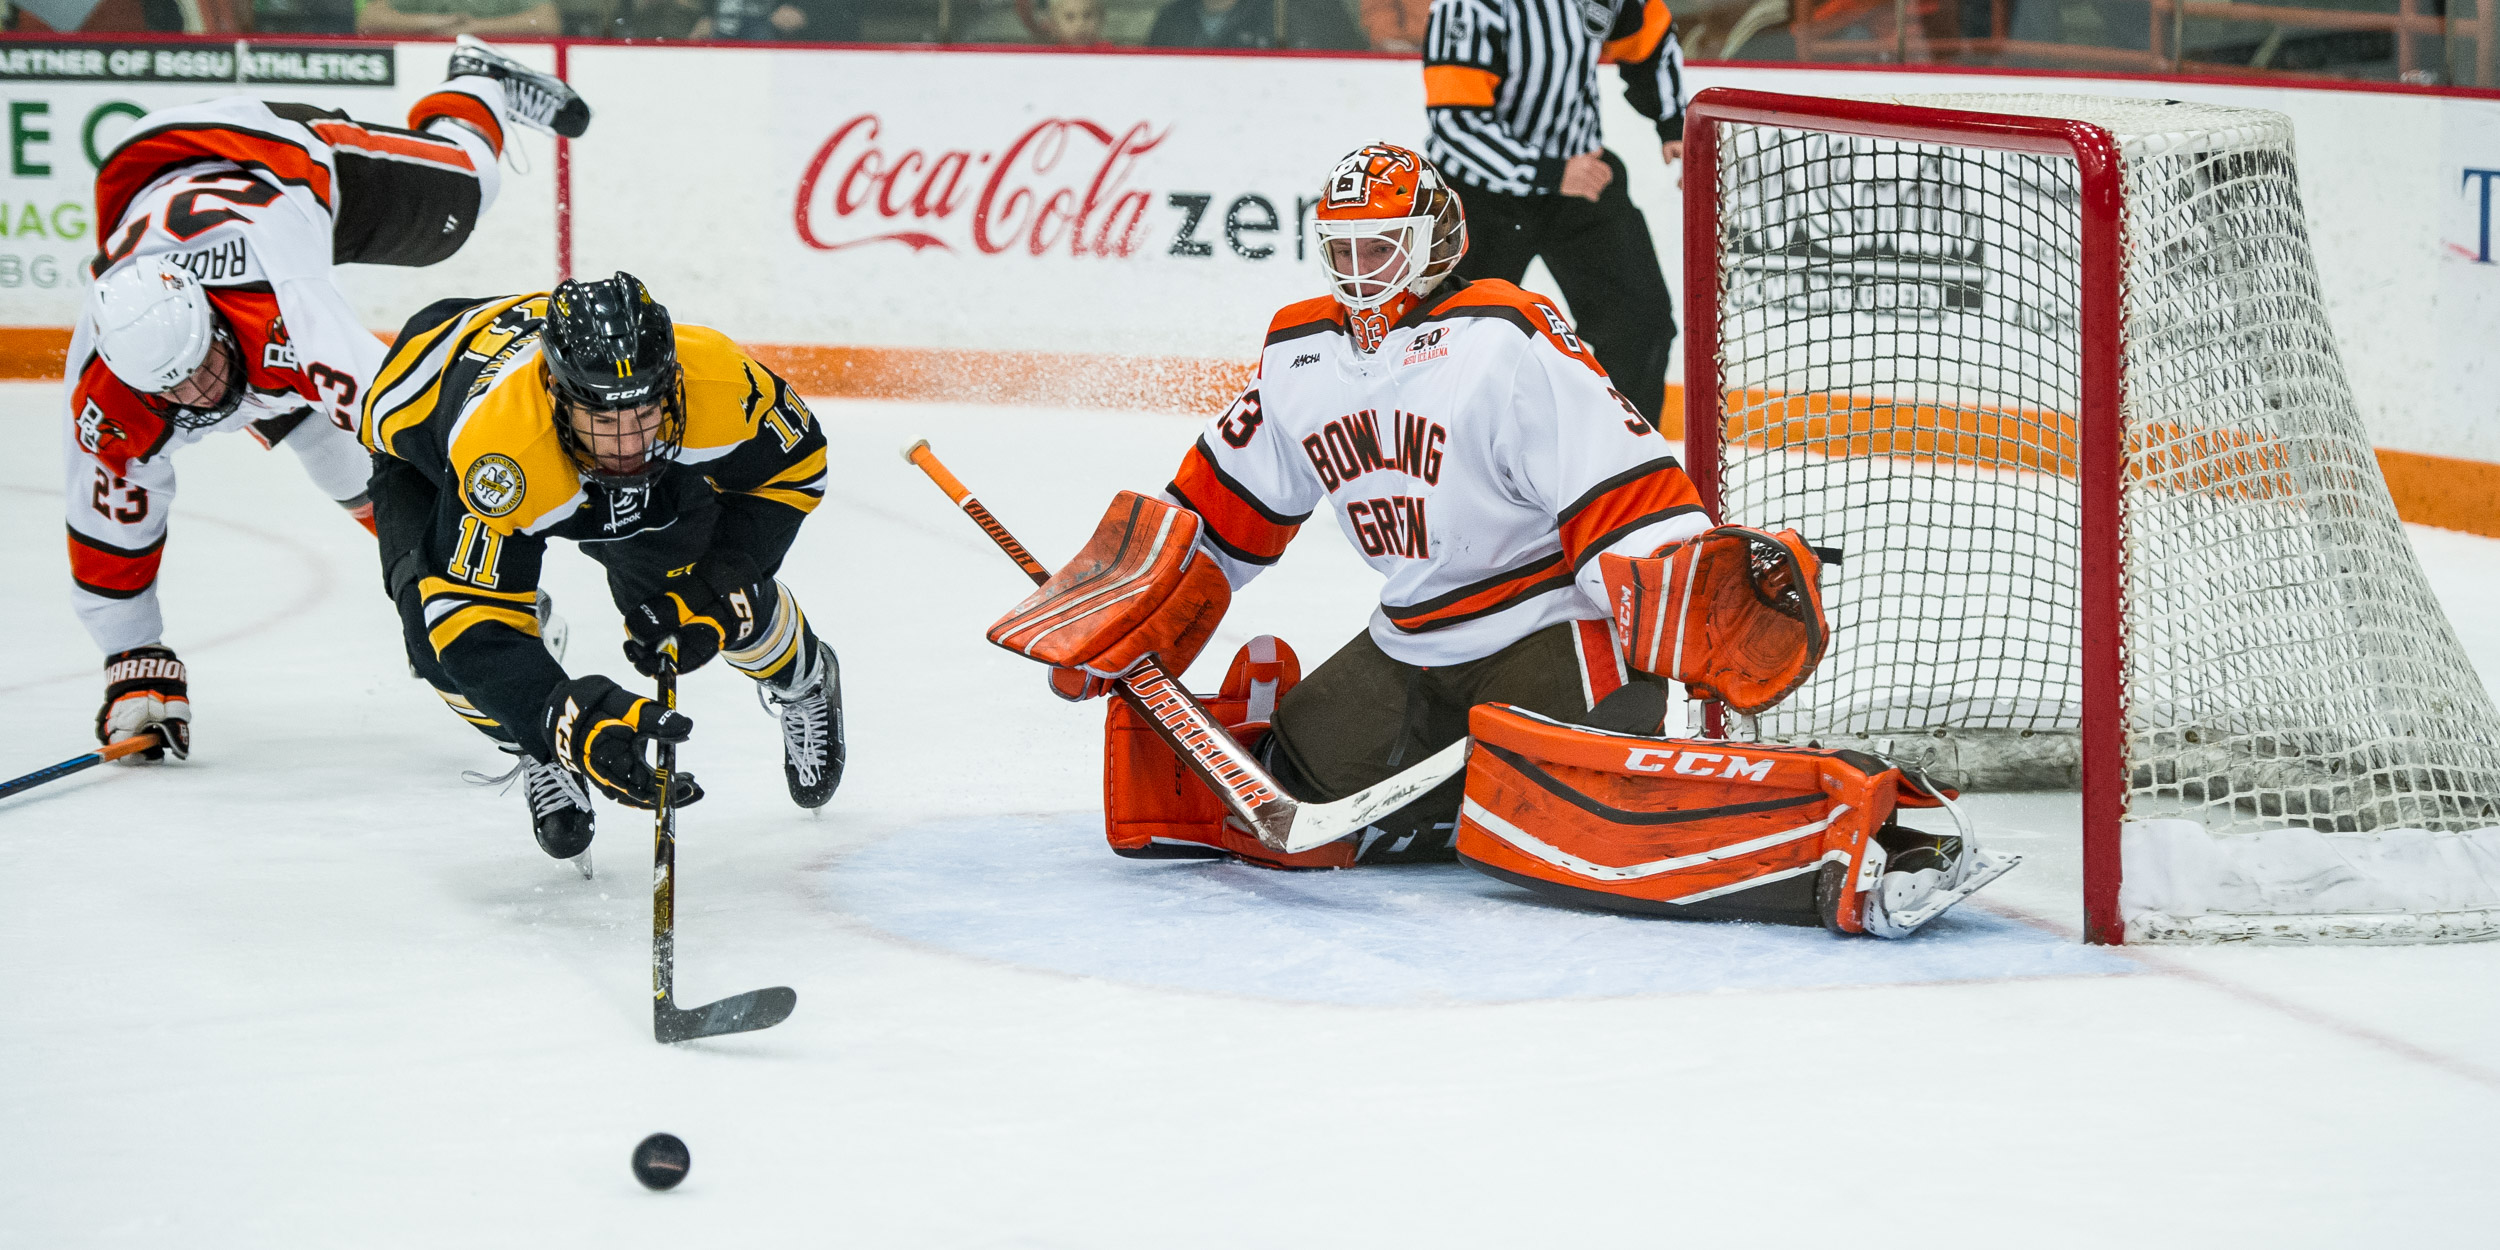 Shorthanded goal late dooms Falcons in 3-1 loss to MTU